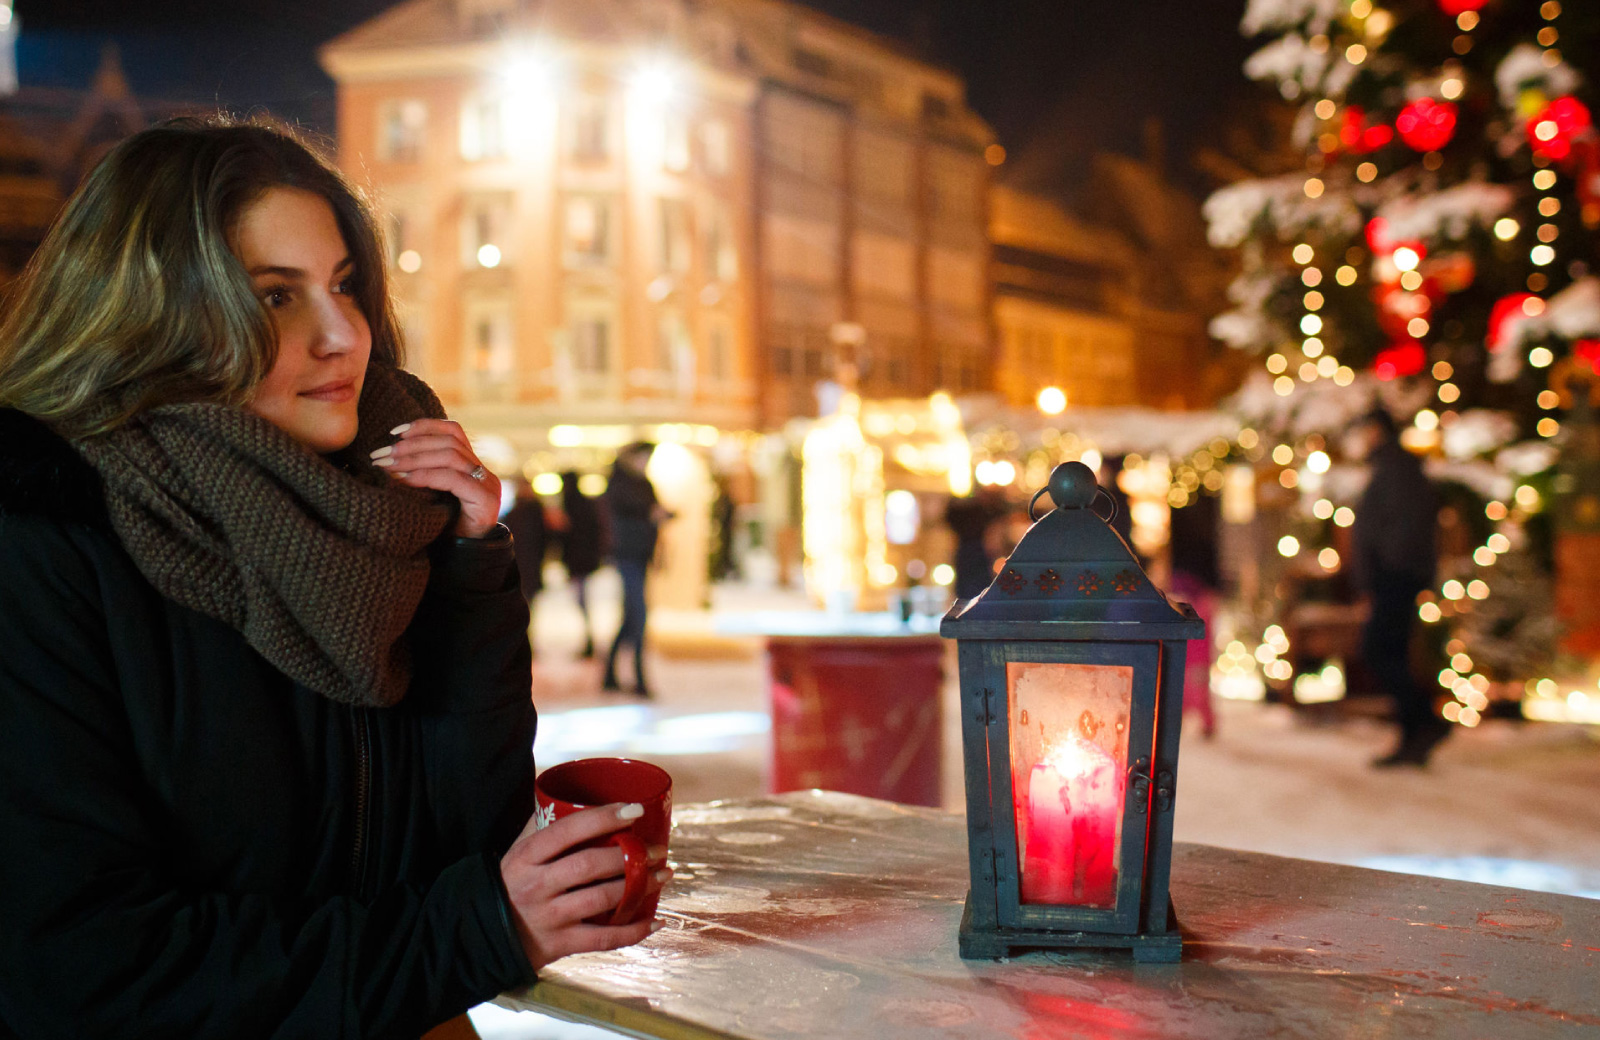 woman in winter clothes enjoying a hot drink